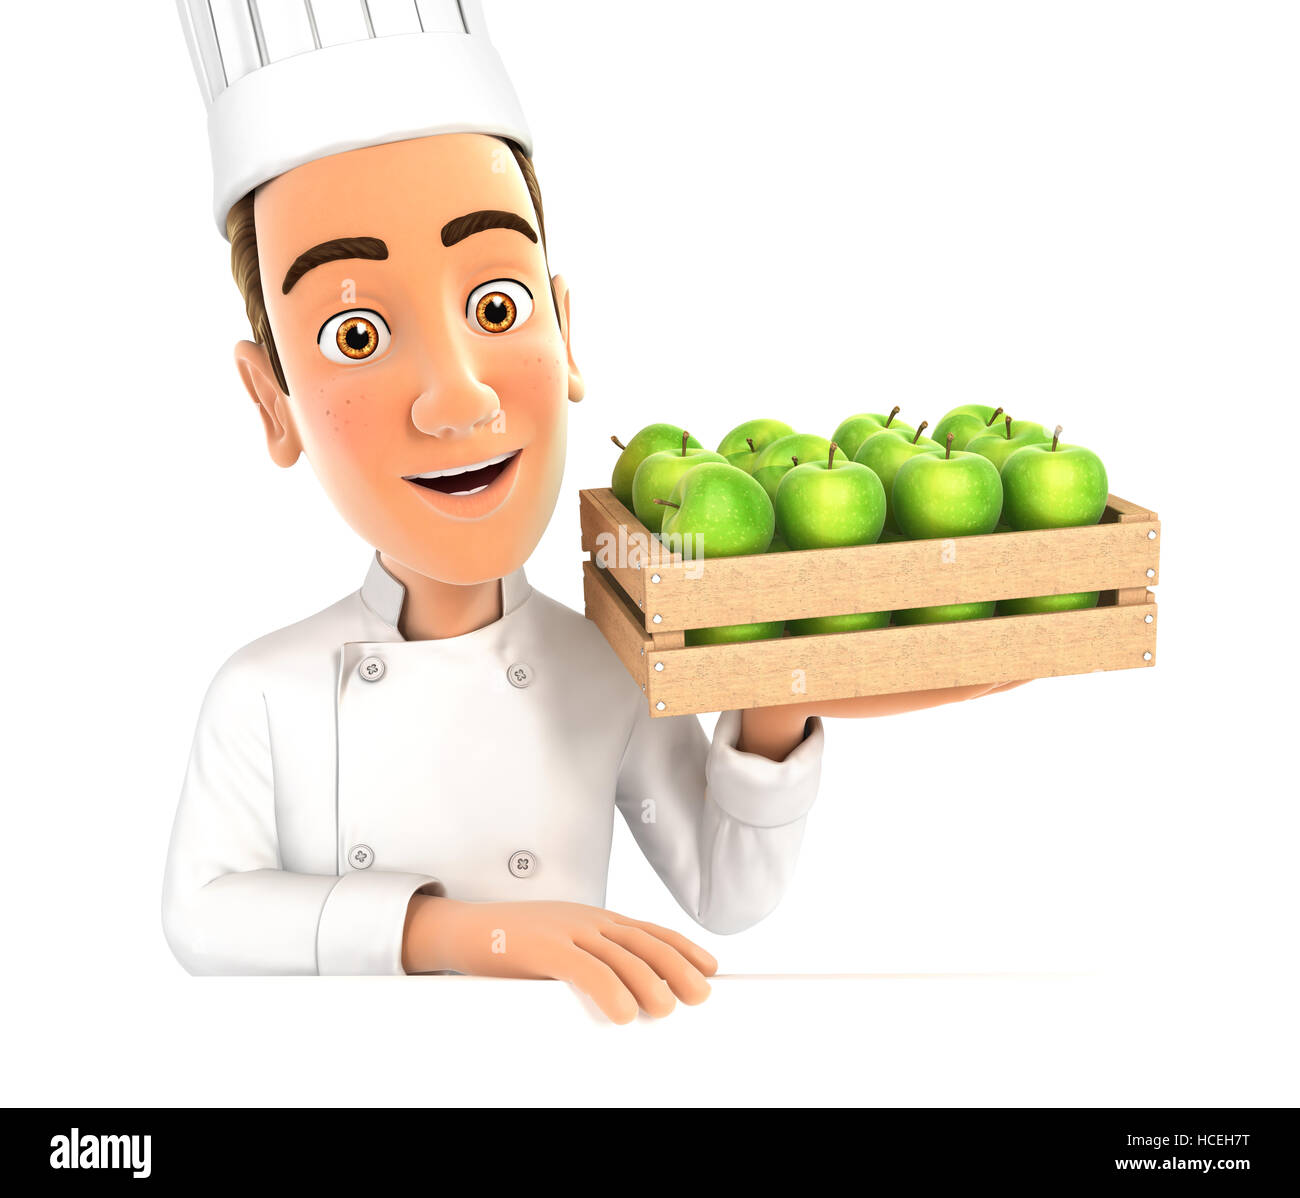 3d head chef holding wooden crate of apples, illustration with isolated white background Stock Photo